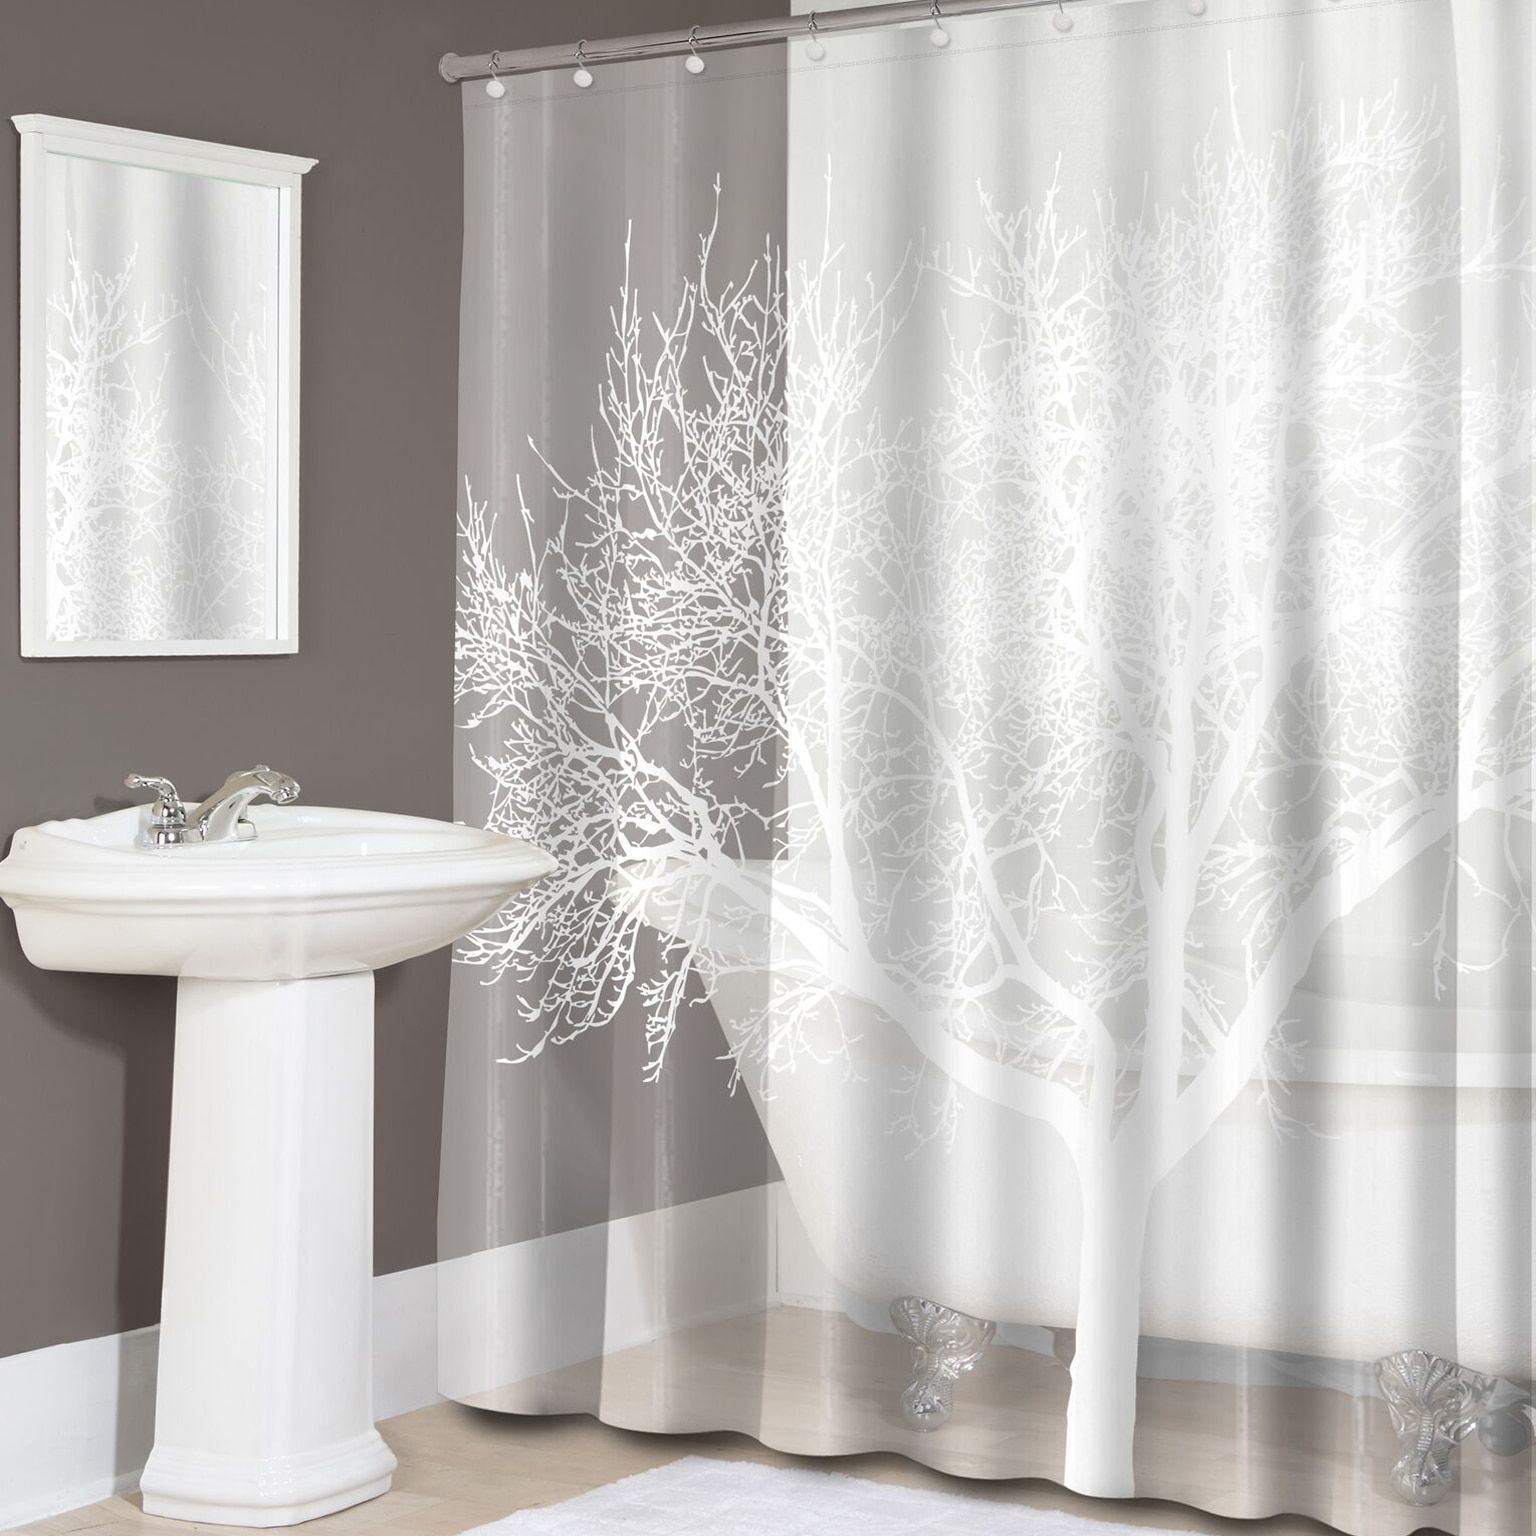 Pearl White Tree Print Peva Shower Curtain Pearl White Shower Curtain Tree Shower Curtains Gray Shower Curtains